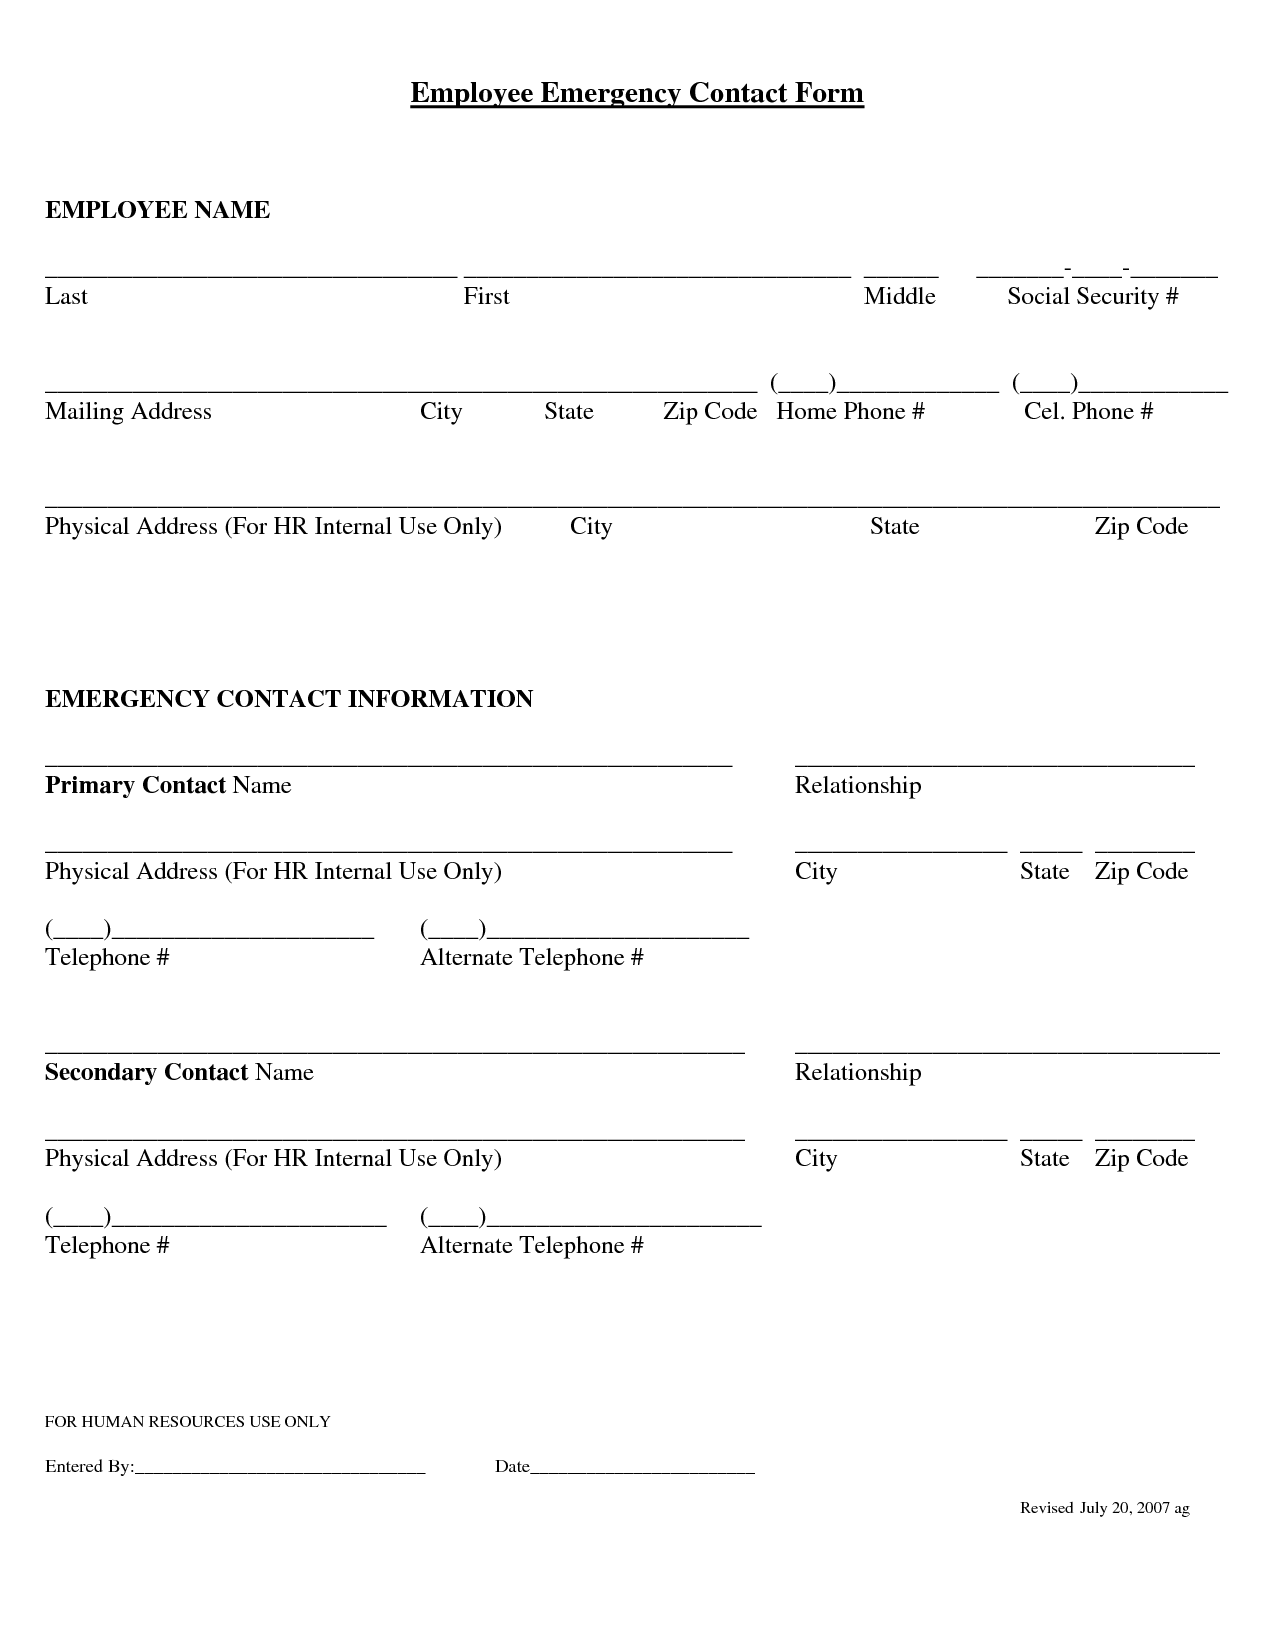 Sample Employee Emergency Contact Form | Professional resumes ...